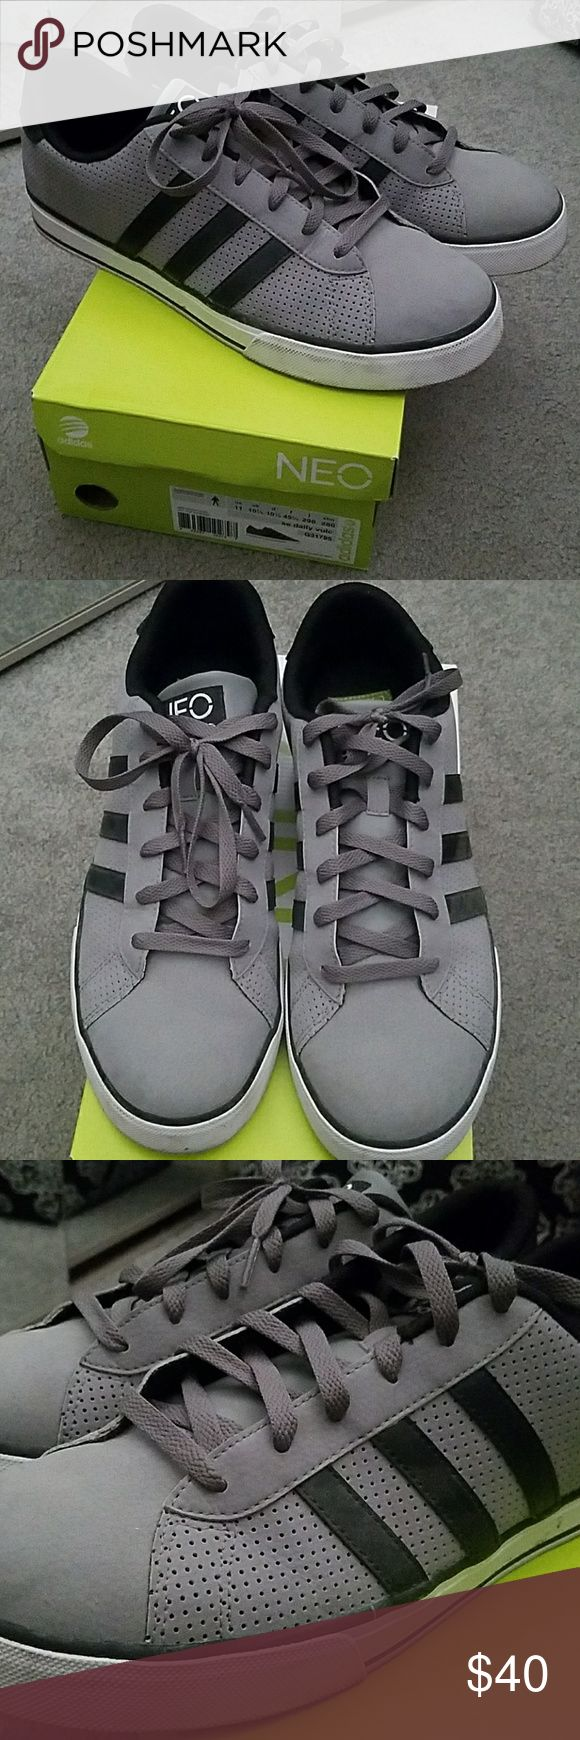 Men's Neo Adidas Shoes Perfect condition.  Shoes were only worn once at our wedding.  Some scuffs on trim as seen in pictures. Ortholite insoles. Comes with original box. adidas Shoes